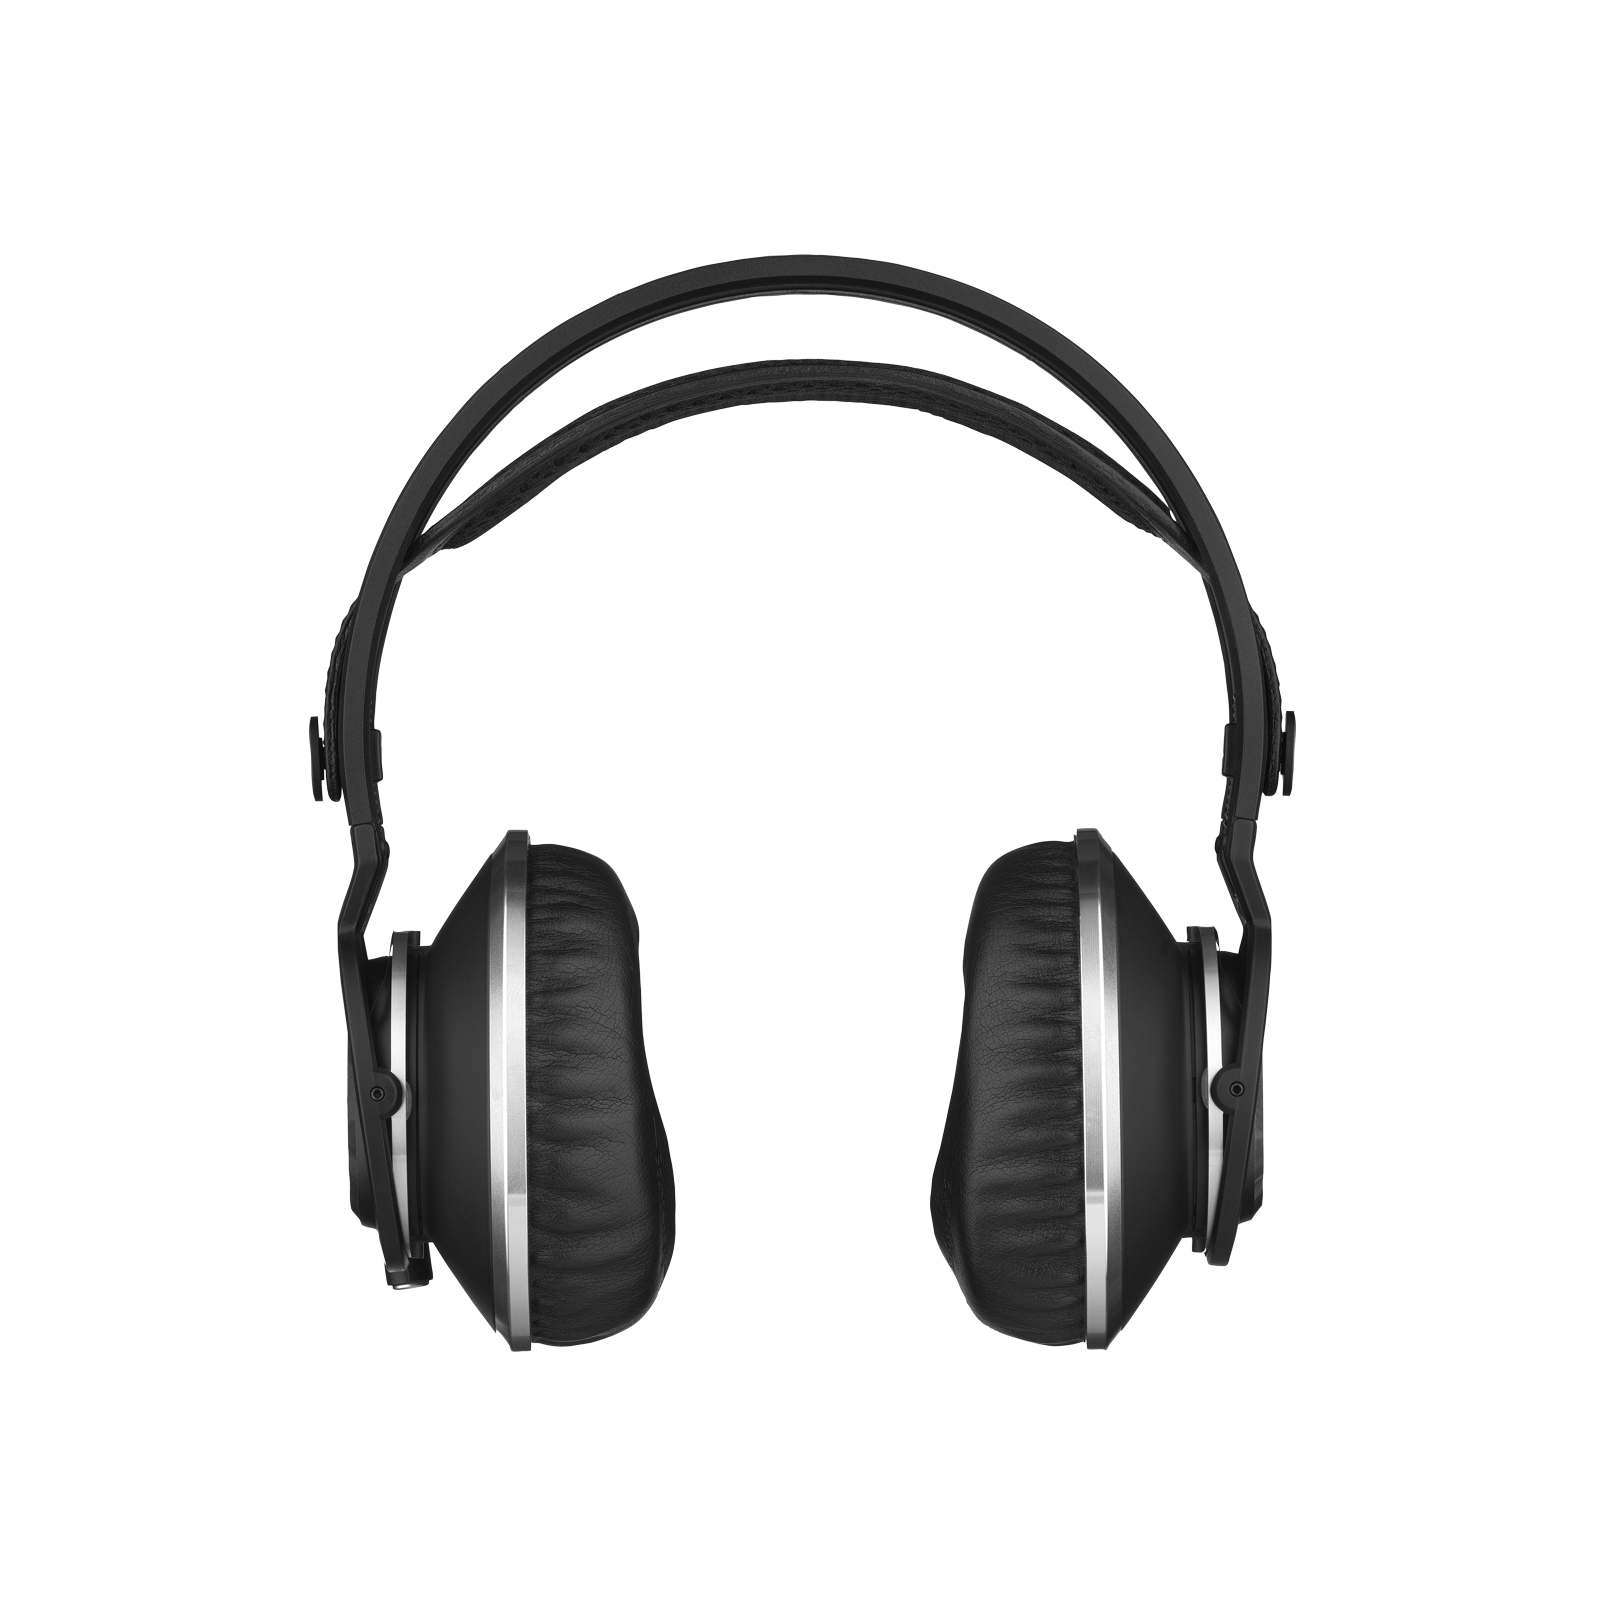 K872 - Black - Master reference closed-back headphones - Front